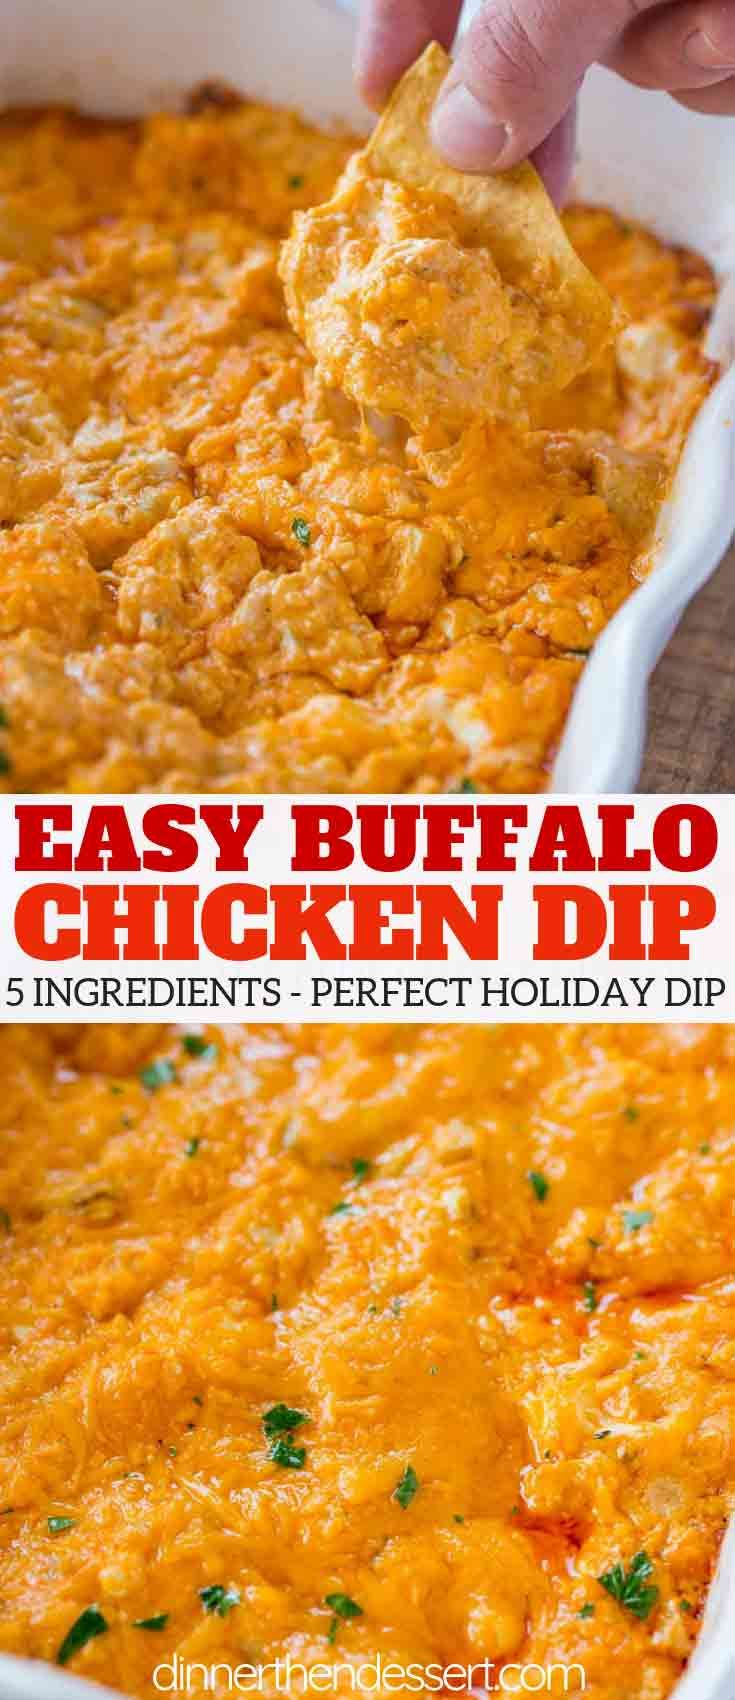 Buffalo Chicken Dip tastes just like buffalo wings dipped in ranch dressing with just five ingredients. No mess and all the flavors you love! |